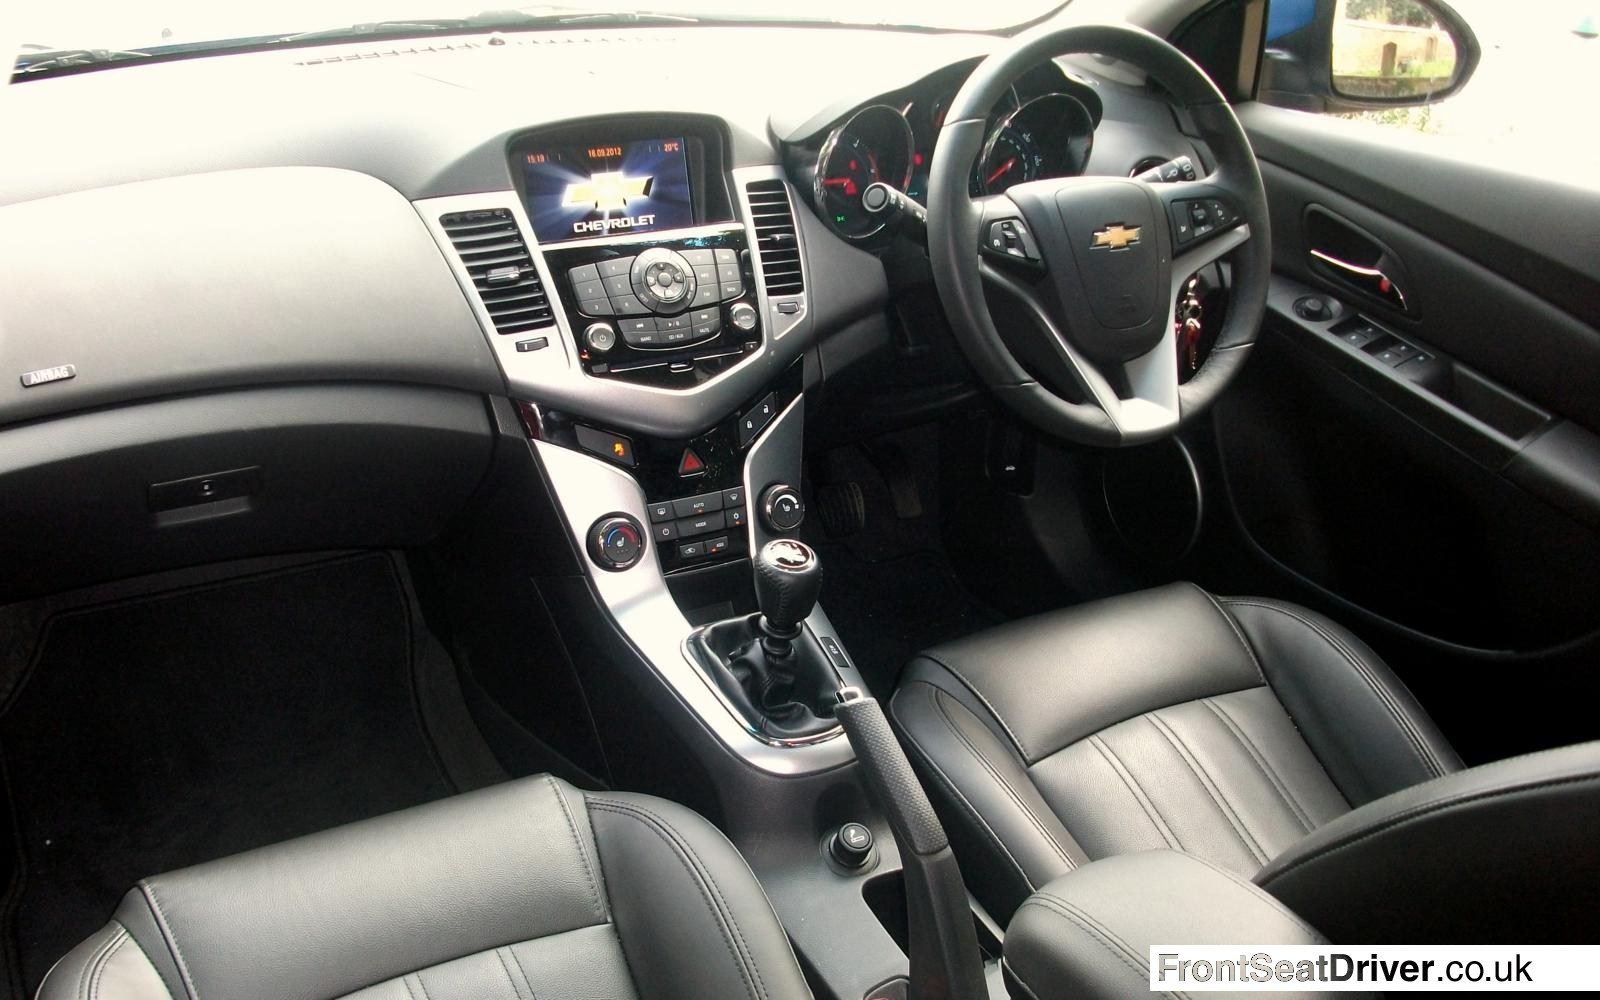 Chevrolet Cruze Ltz Executive 2012 Interior Front Seat